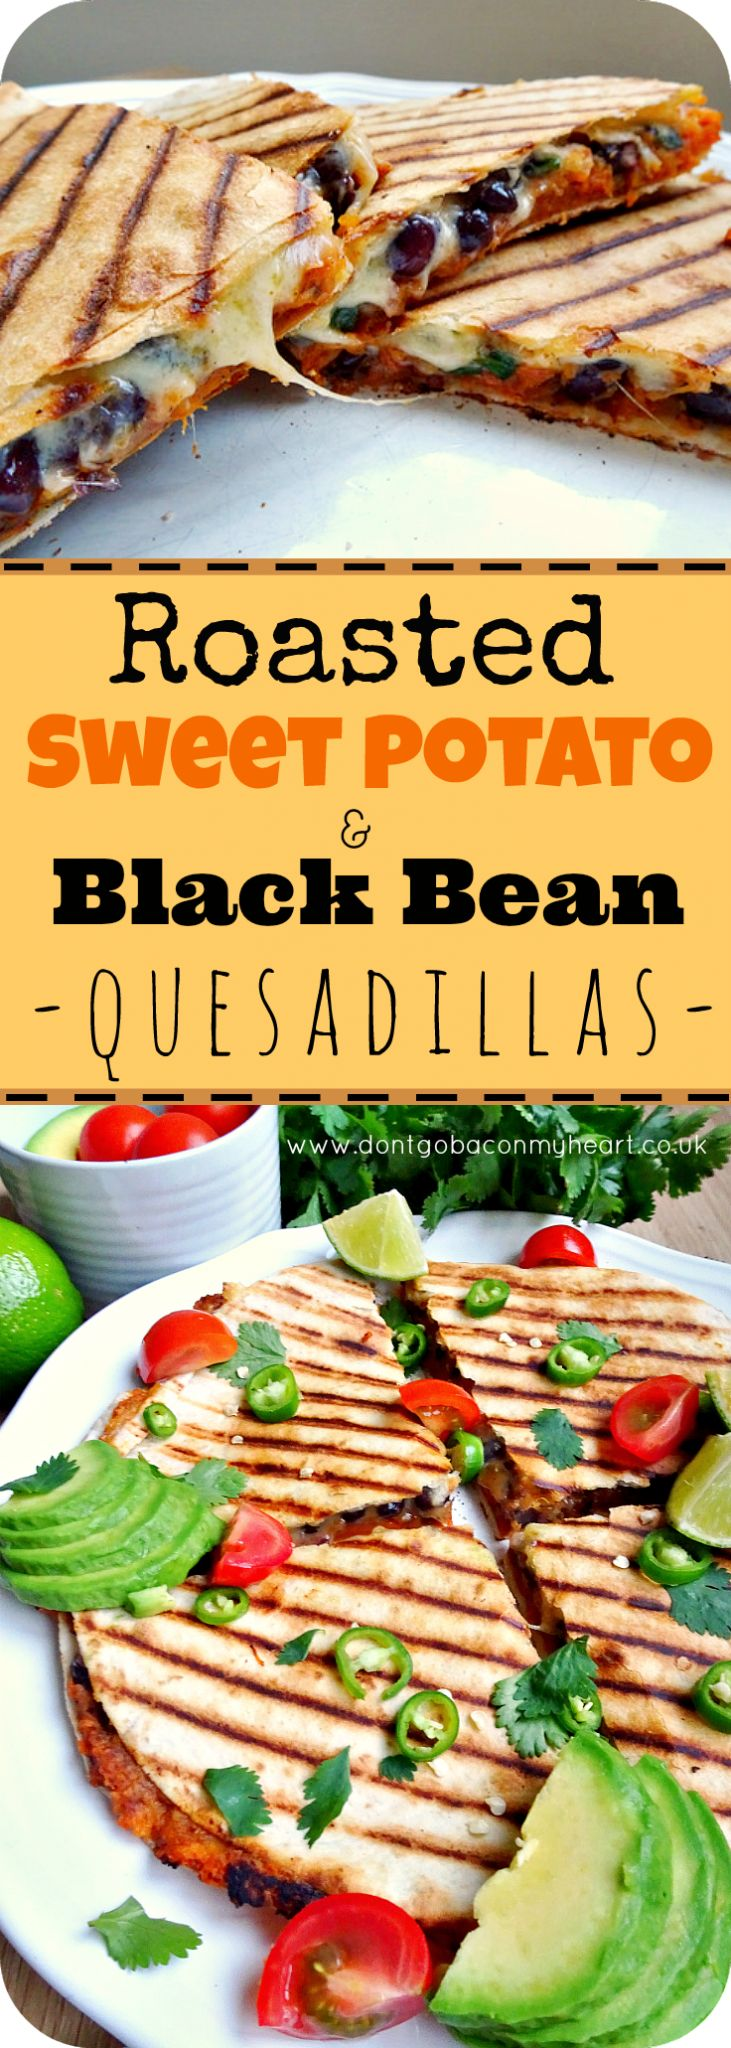 The best vegetarian Quesadillas you'll ever make. So easy, super quick and most importantly really delicious and filling. Easy to adapt to vegan.(Mexican Food Recipes)